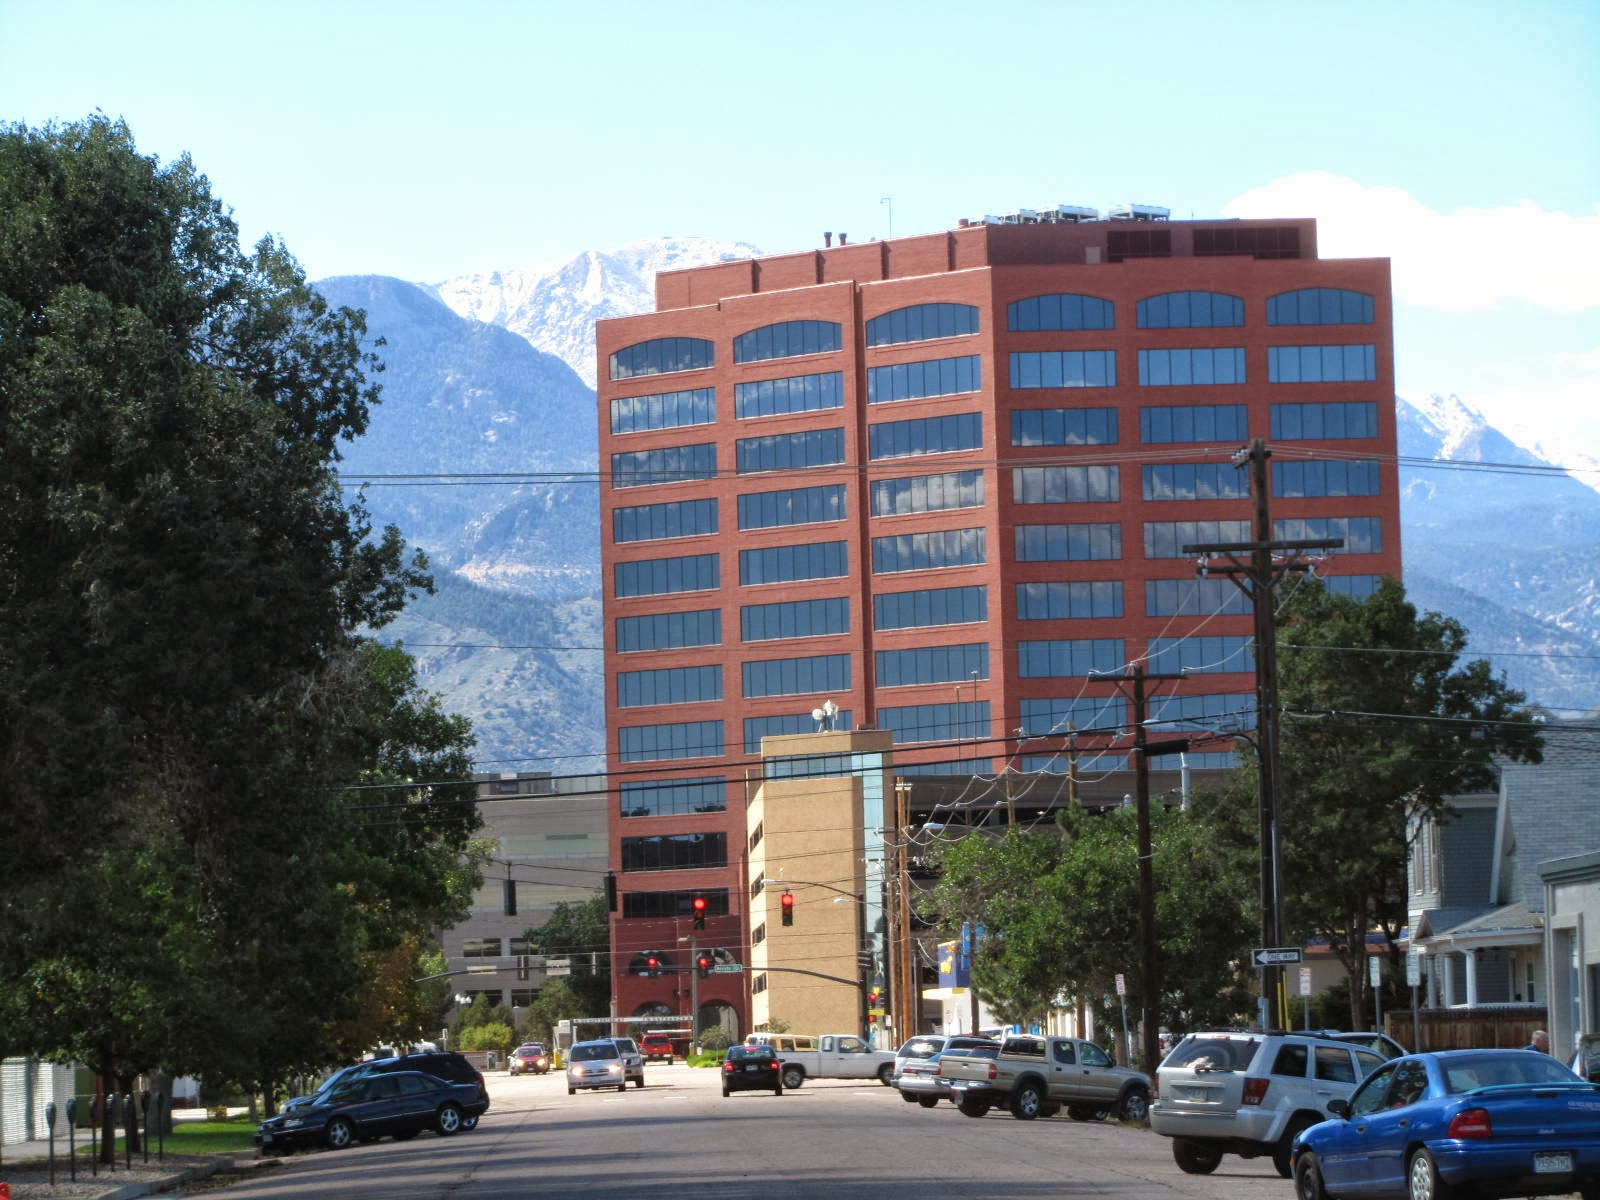 Queens University Of Charlotte >> autoliterate: Colorado Springs Downtown (south side)